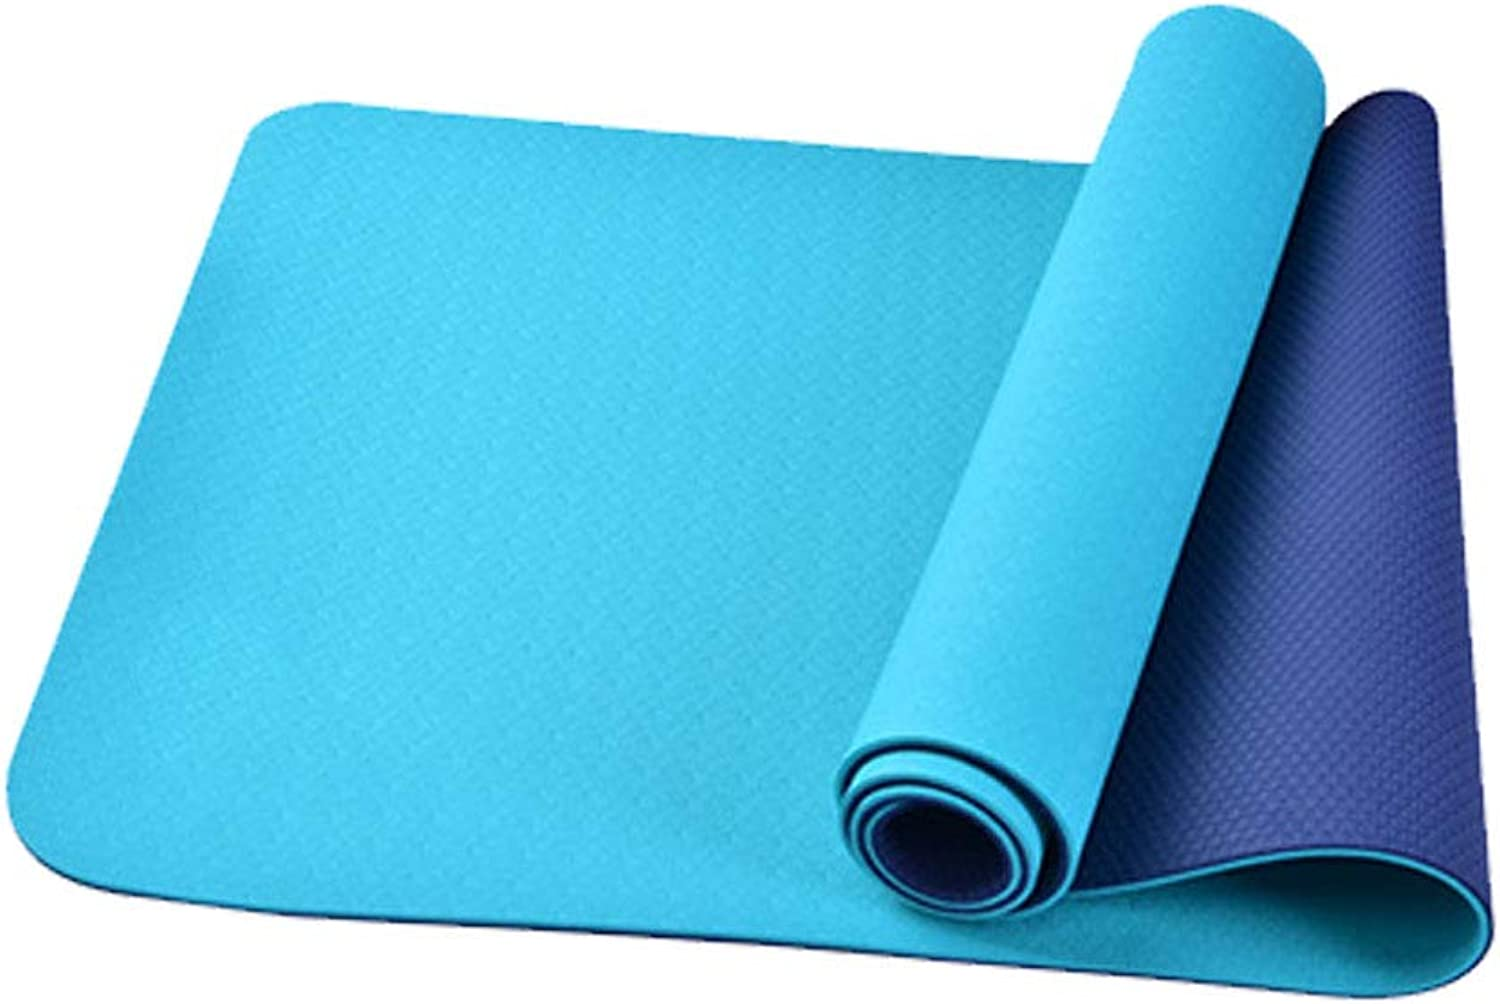 Yoga Mat Non-Slip High Elastic Eco-Friendly Material TPE Suitable for Beginners Fitness Camping Thickness 6 mm